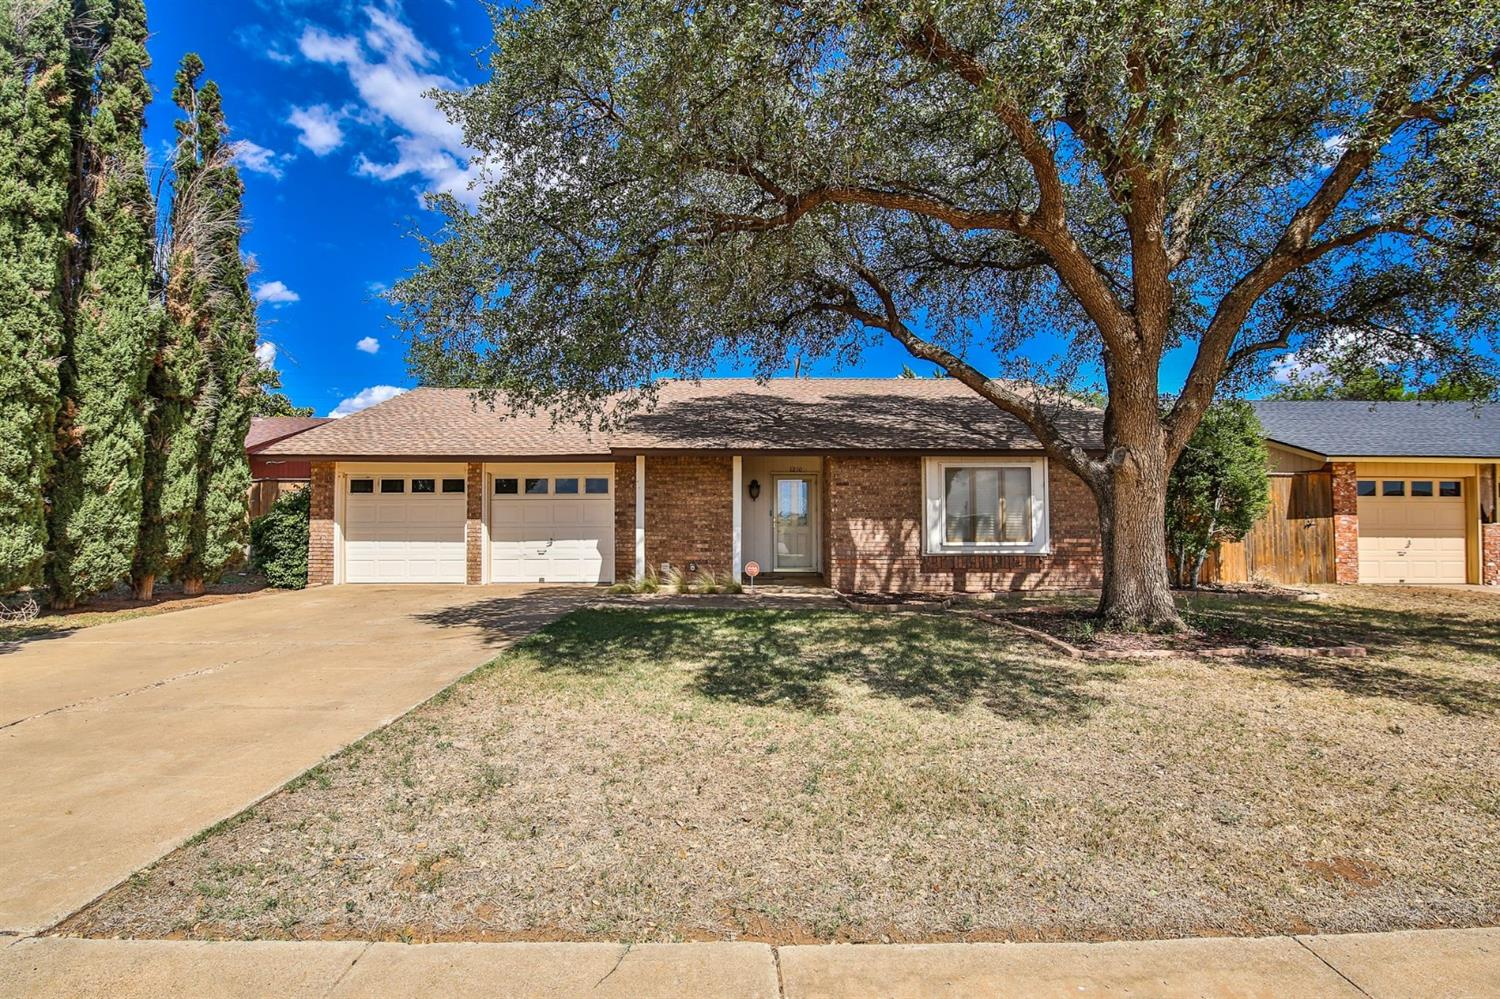 MOVE IN Ready!!!  This home is fully updated.  You will LOVE this home!  This home has easy access from all directions.  Quiet neighborhood with a quiet street.  Grab your favorite Realtor and set up your own private tour!